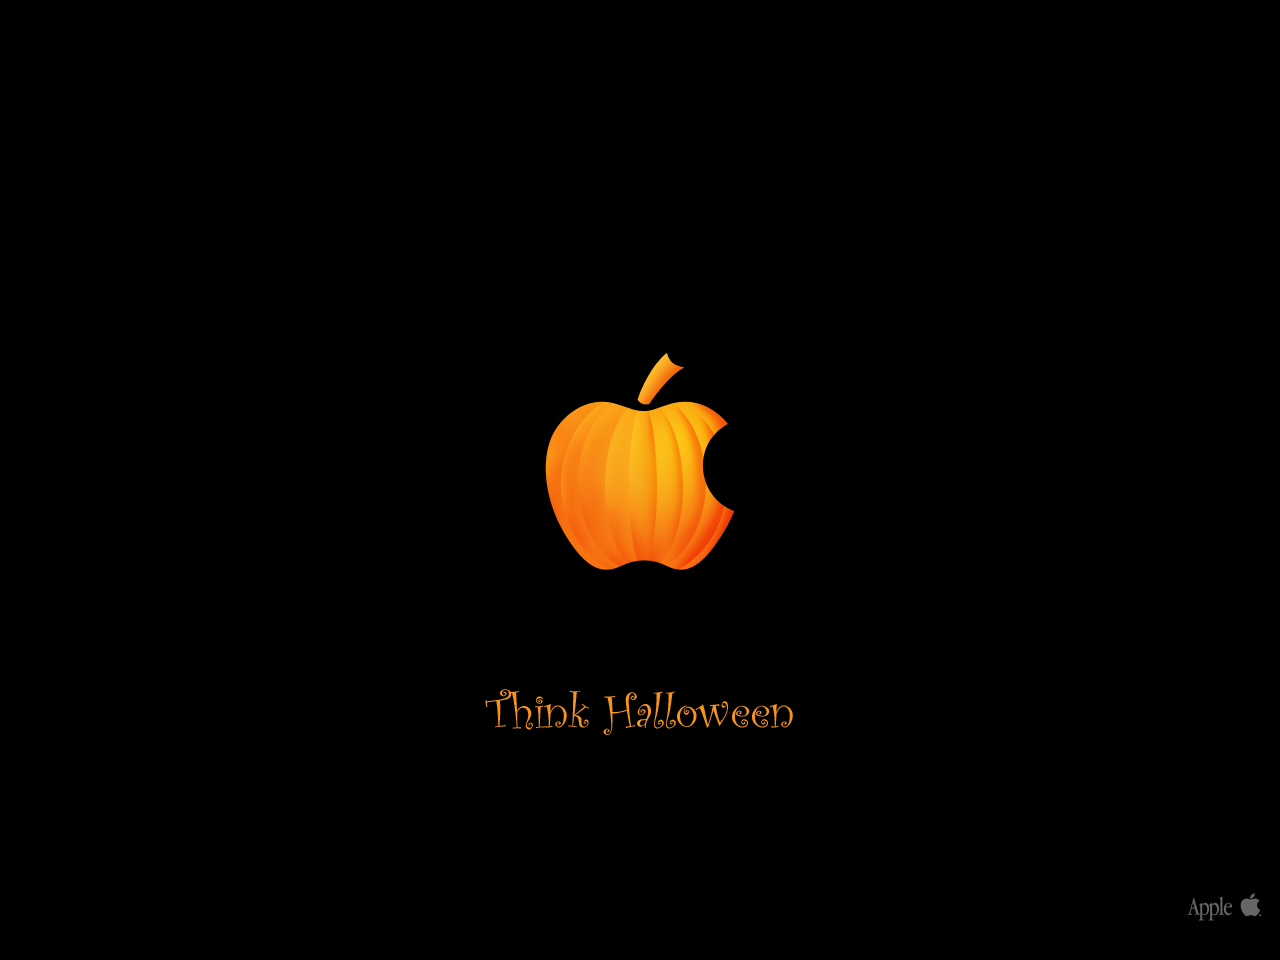 Halloween horror scaryholidayevent images pictures wallpapers 1280x960